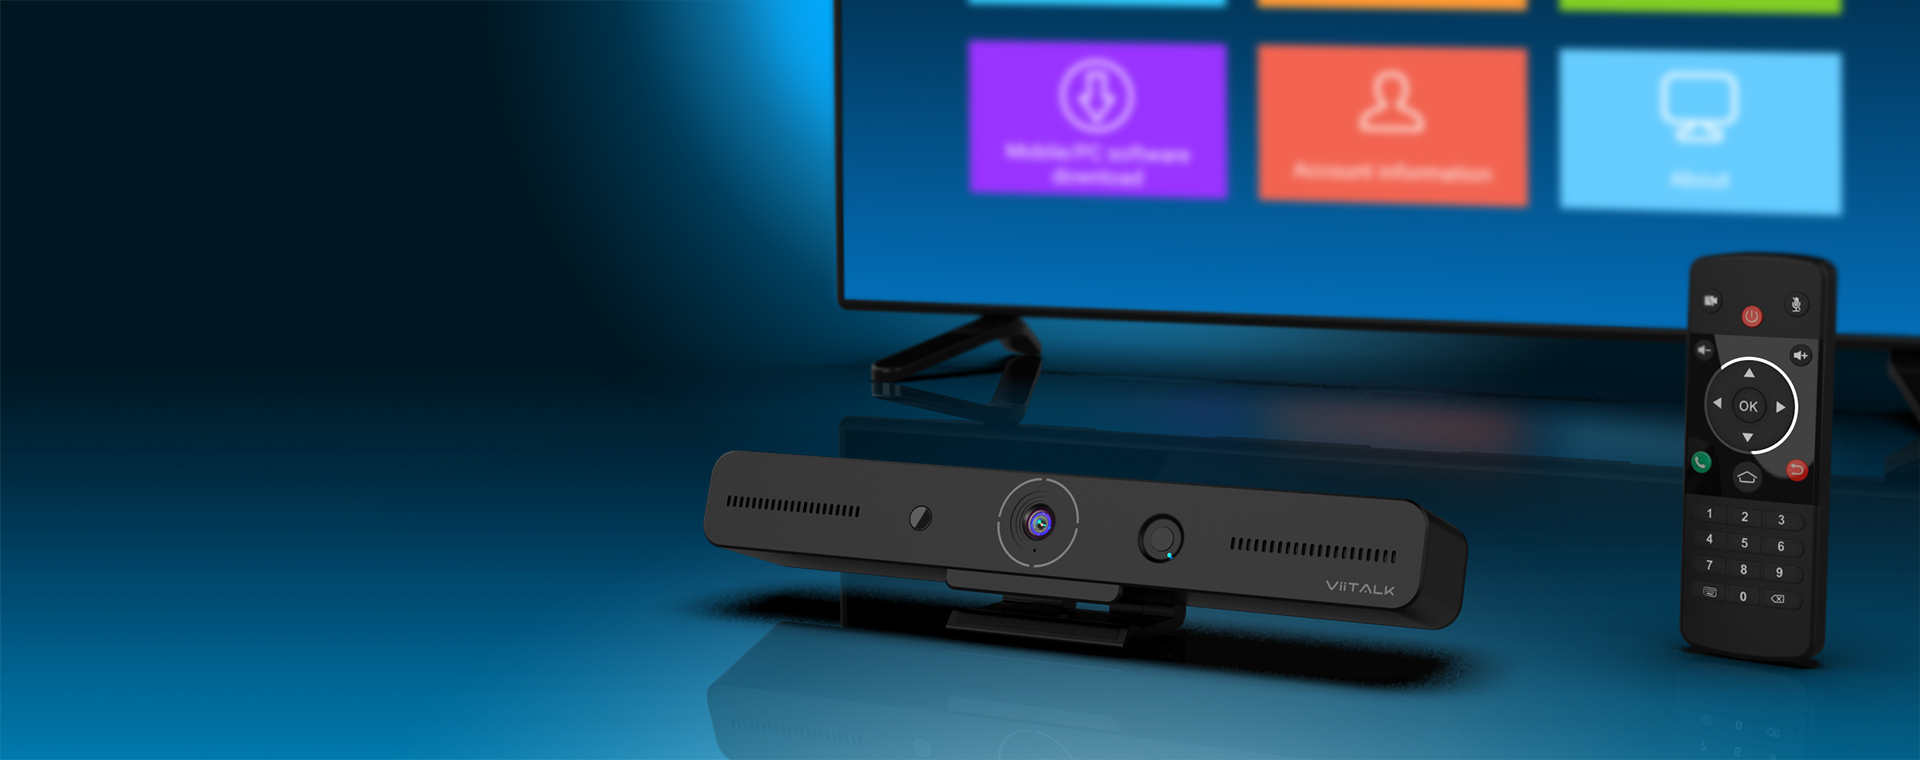 ViiTALK - The Best All-In-One </br> Video Conferencing Device